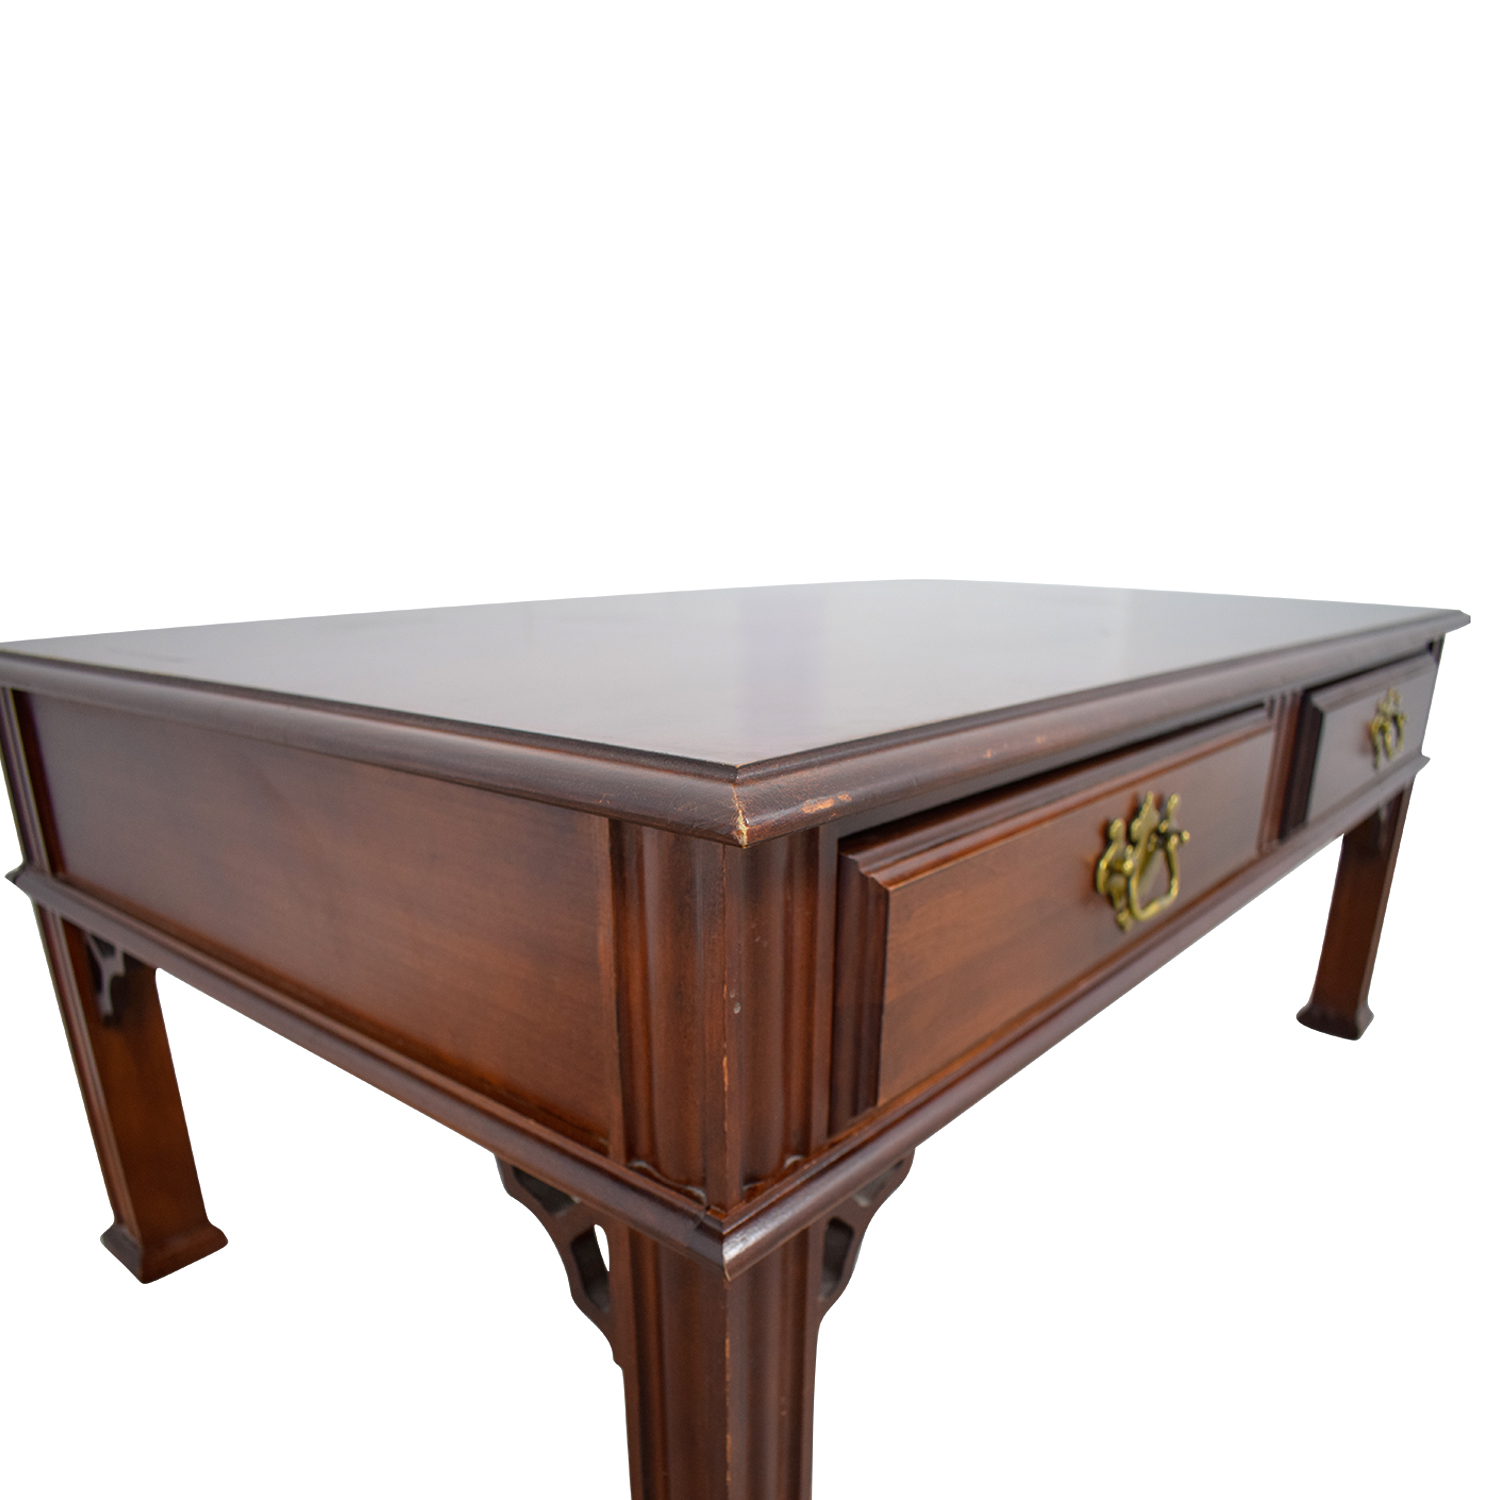 Broyhill Broyhill Wood Two-Drawer Coffee Table